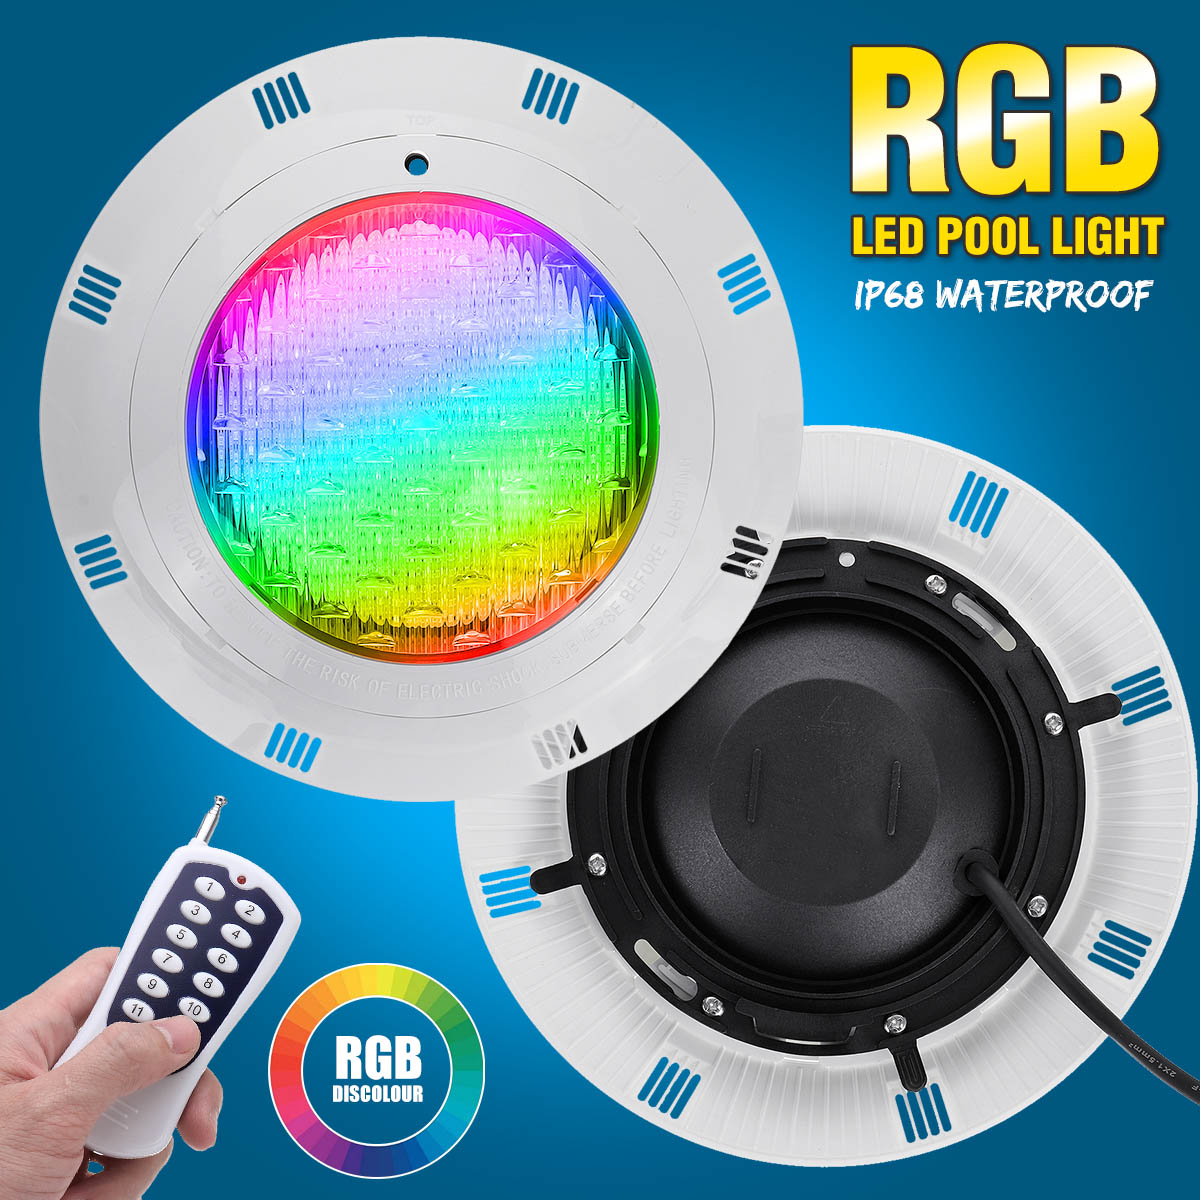 45W RGB Led Swimming Pool Light 450LED IP68 Waterproof AC12V-24V Outdoor RGB UnderWater Light Pond Led Piscina Luz Spotlight